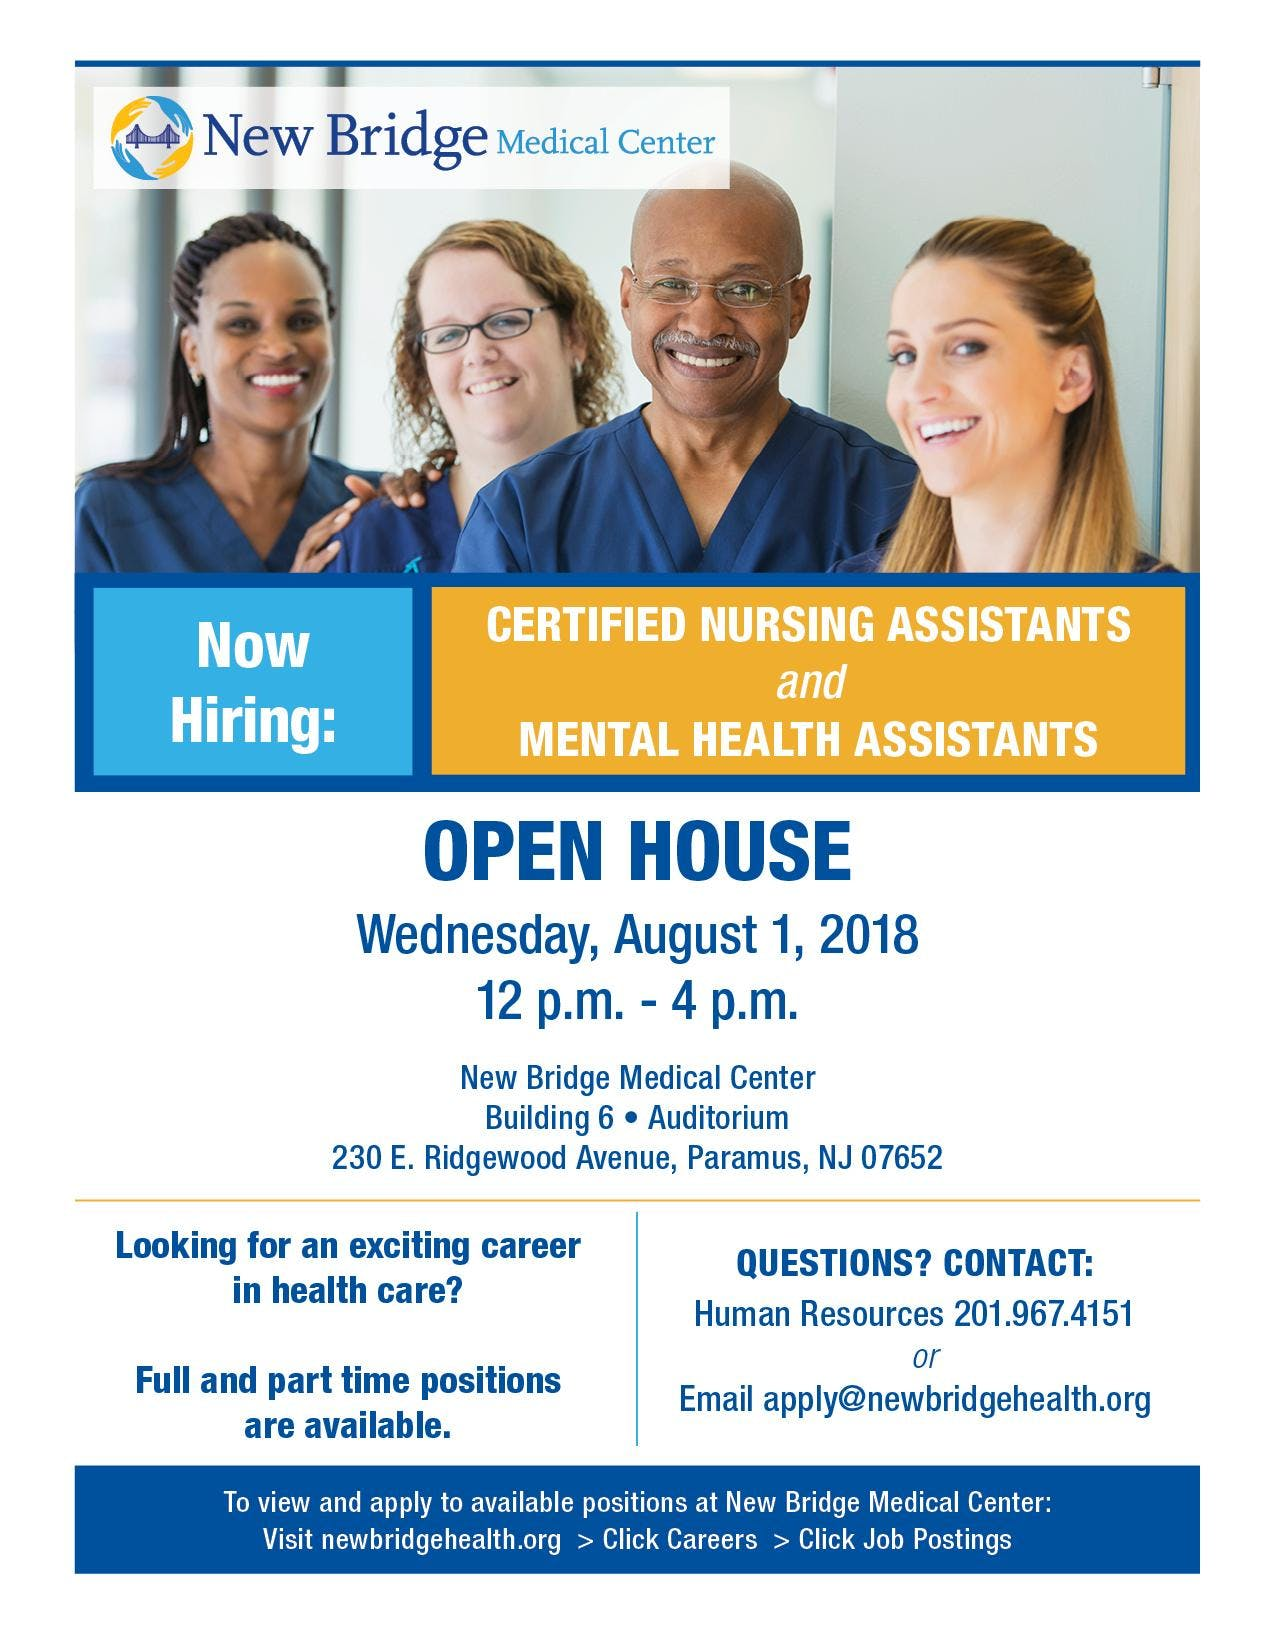 Job Fair Open House For Certified Nursing Assistants And Mental